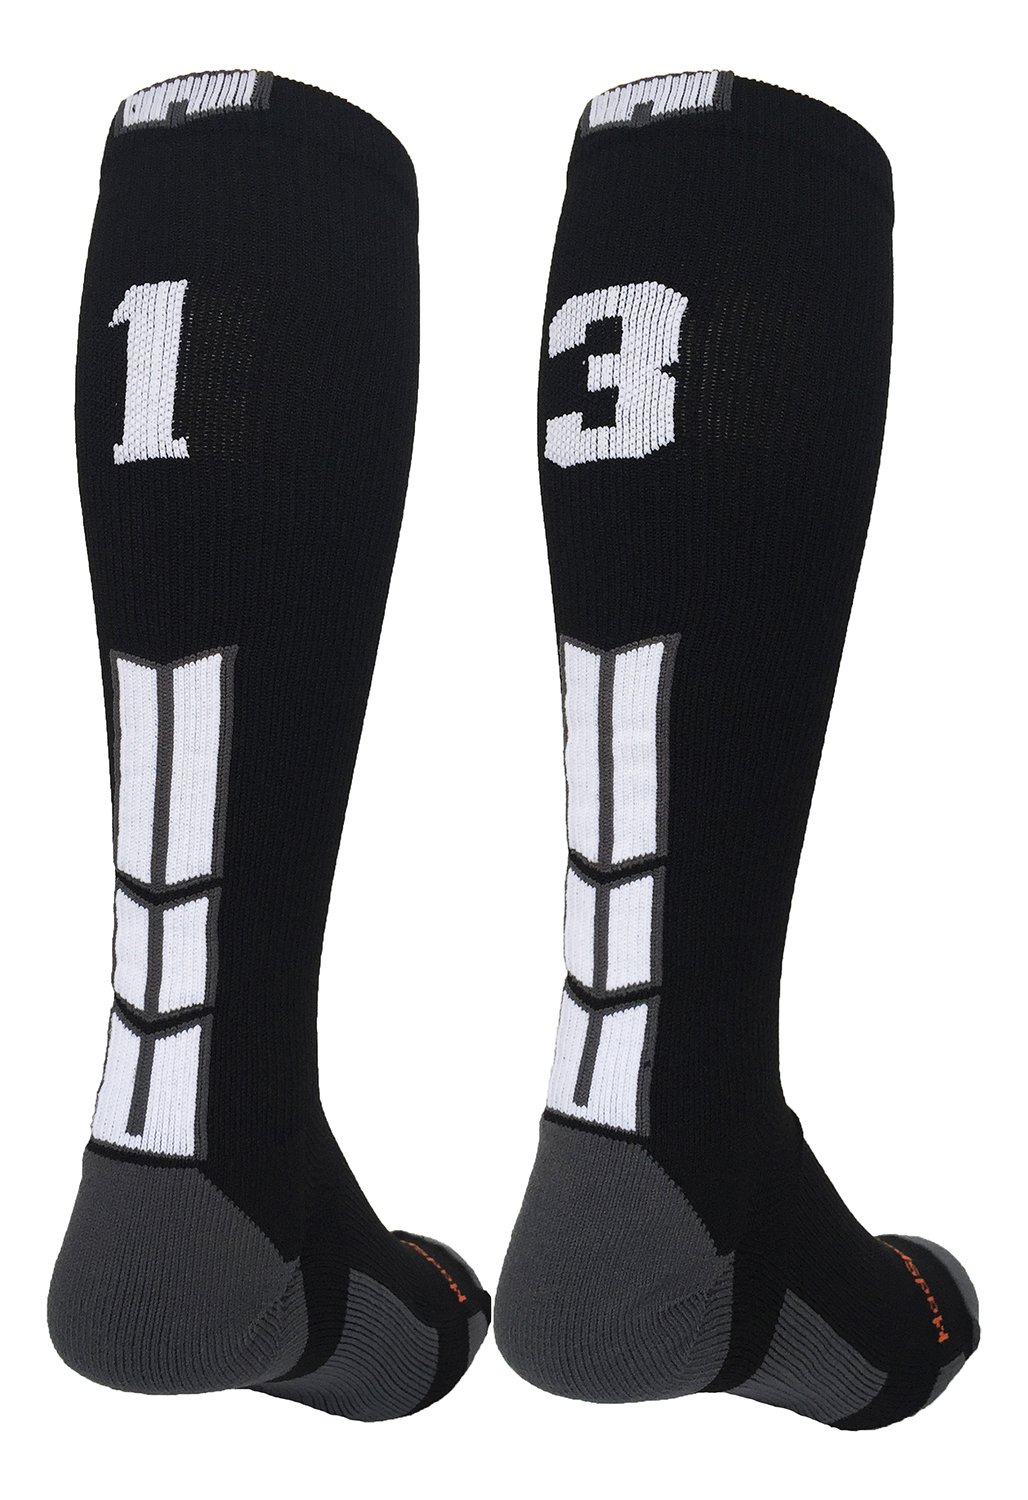 MadSportsStuff Player Id Black/White Over The Calf Number Socks (#13, Small)